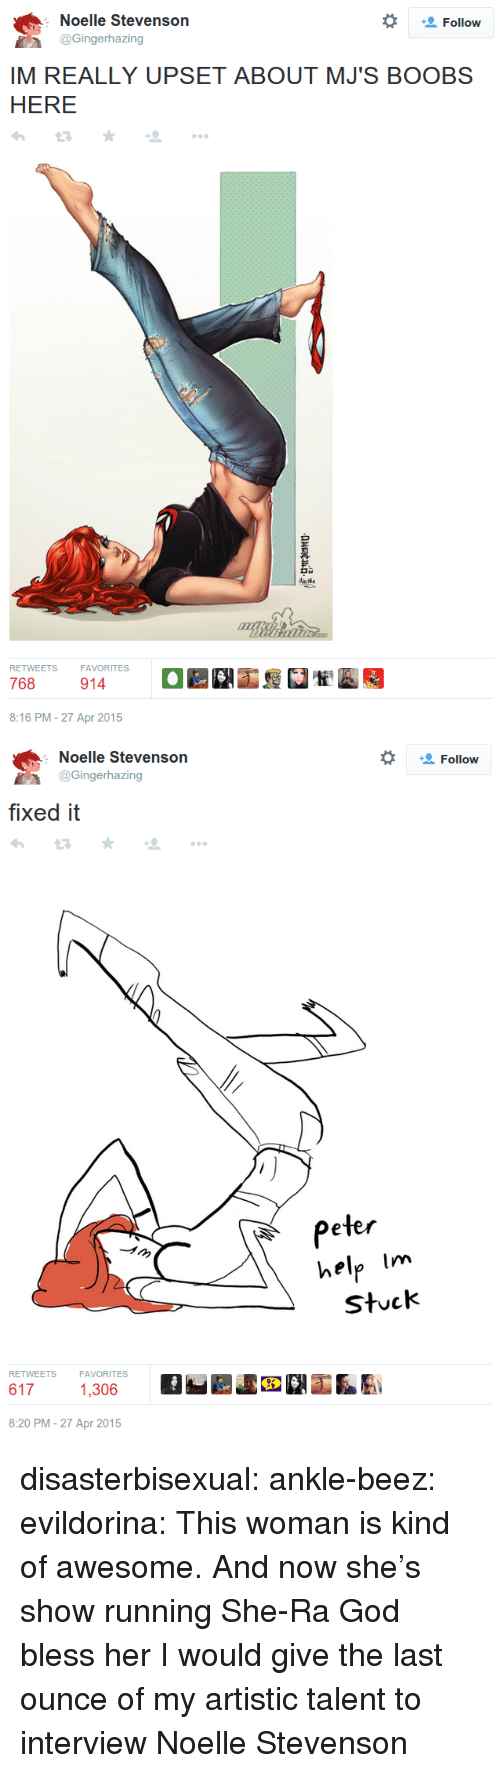 God, Target, and Tumblr: Noelle Stevenson  @Gingerhazing  Follow  IM REALLY UPSET ABOUT MJ'S BOOBS  HERE  FAVORITES  8:16 PM-27 Apr 2015   Noelle Stevenson  *  Follow  İA @Gingerhazing  fixed it  Peter  help Im  stuck  RETWEETS  FAVORITES  6171,300  8:20 PM-27 Apr 2015 disasterbisexual:  ankle-beez:  evildorina:  This woman is kind of awesome.  And now she's show running She-Ra God bless her  I would give the last ounce of my artistic talent to interview Noelle Stevenson